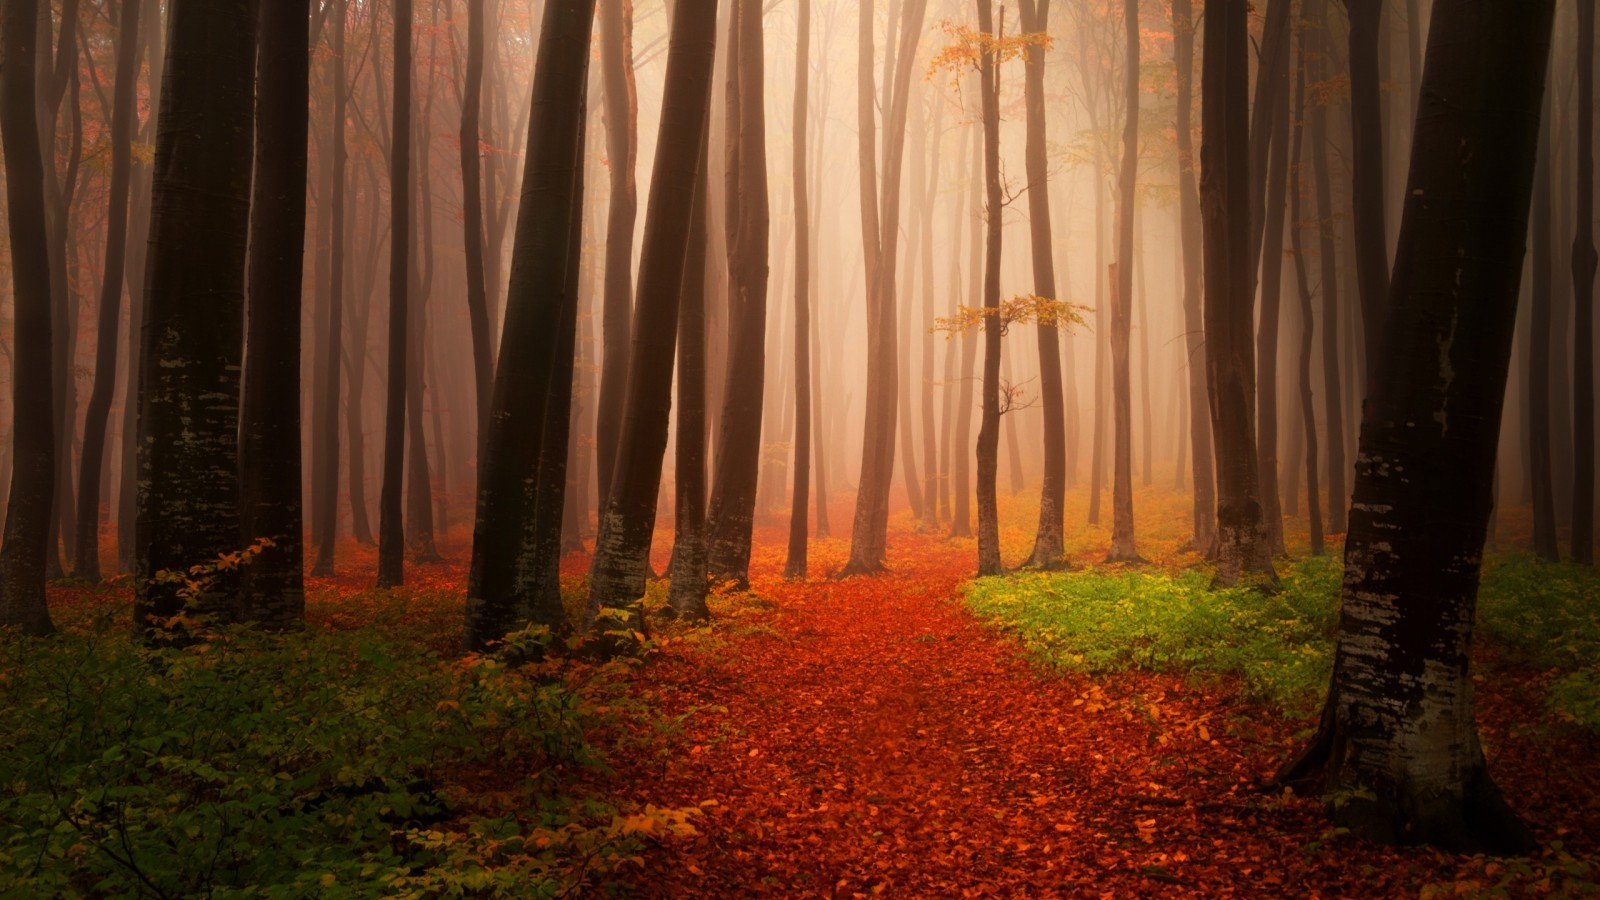 Creative Fall Wallpaper Misty Autumn Forest Wallpapers Hd Wallpapers Id 18992